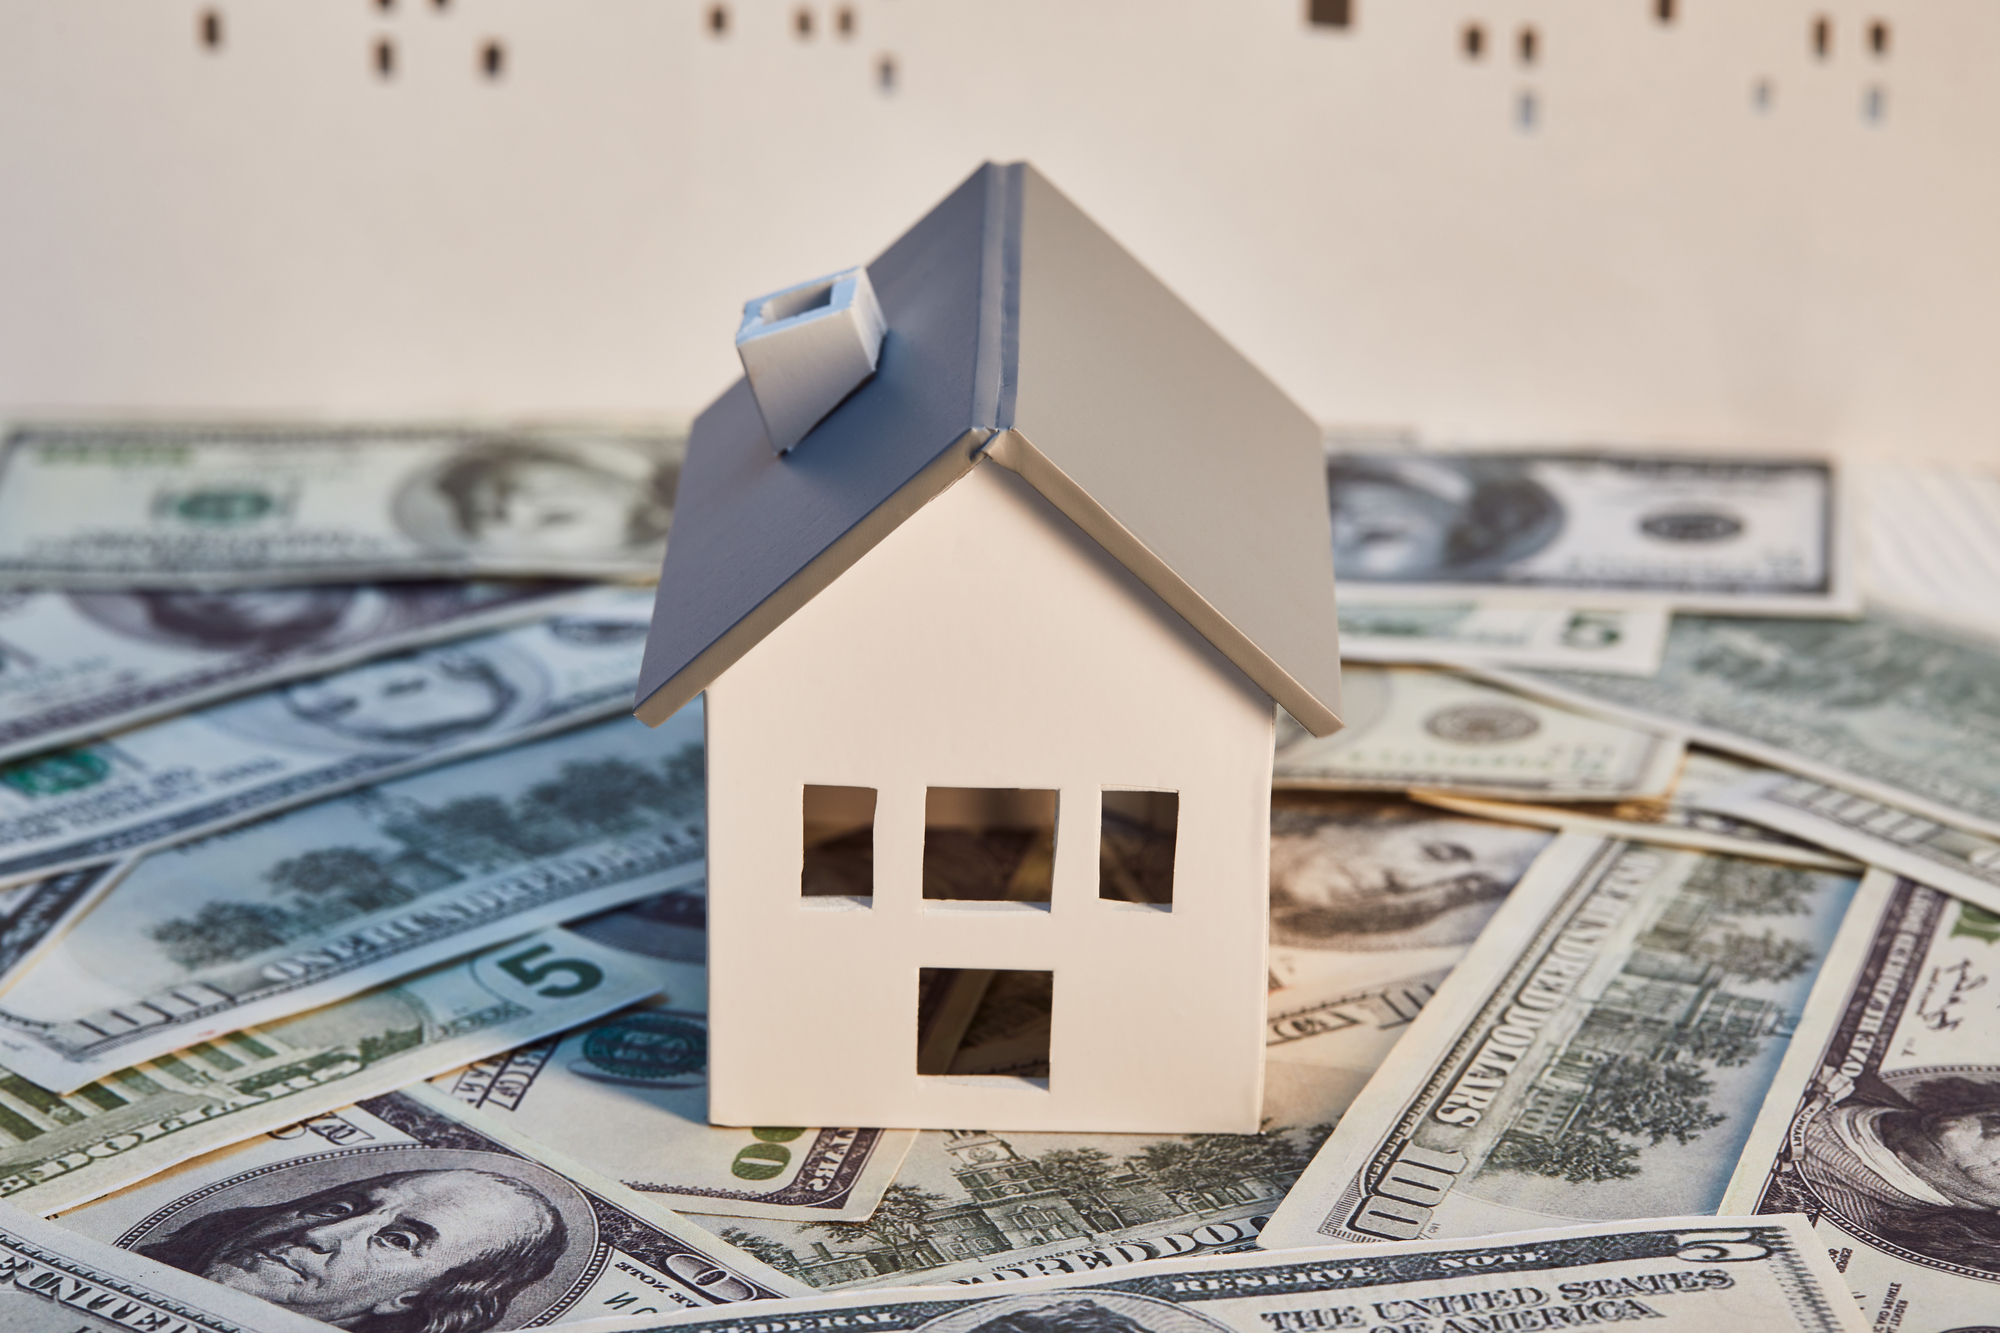 White house model on dollar banknotes, real estate concept